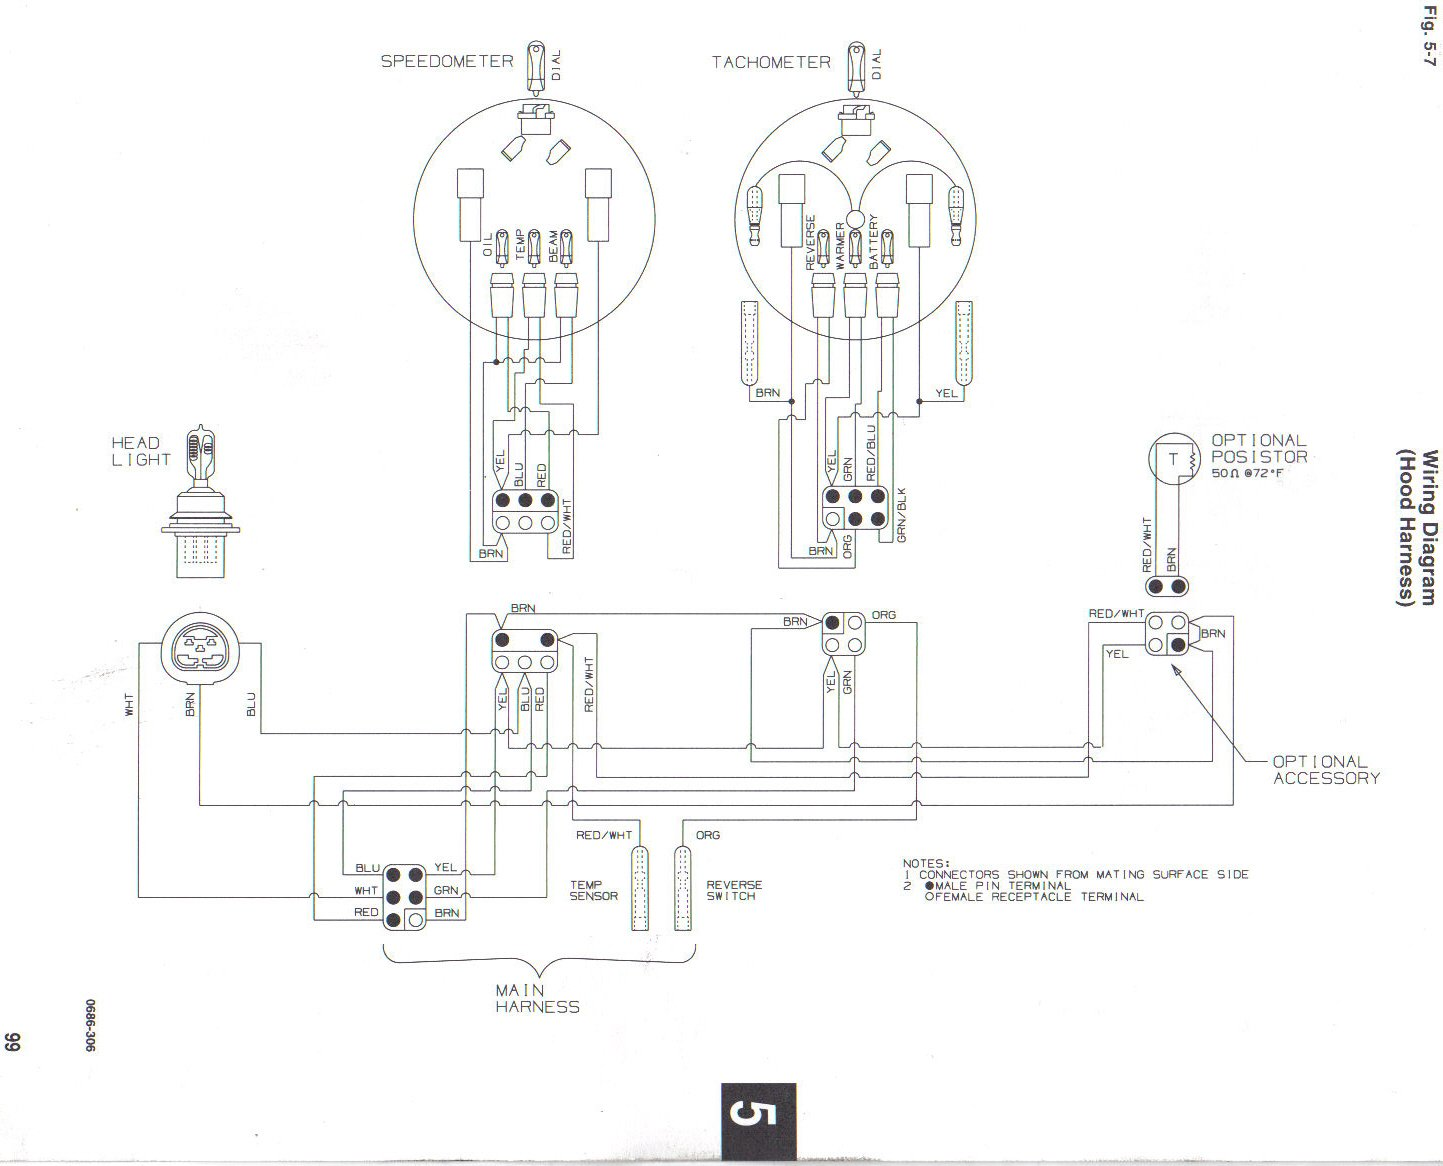 98 Z 440 Wiring Diagram